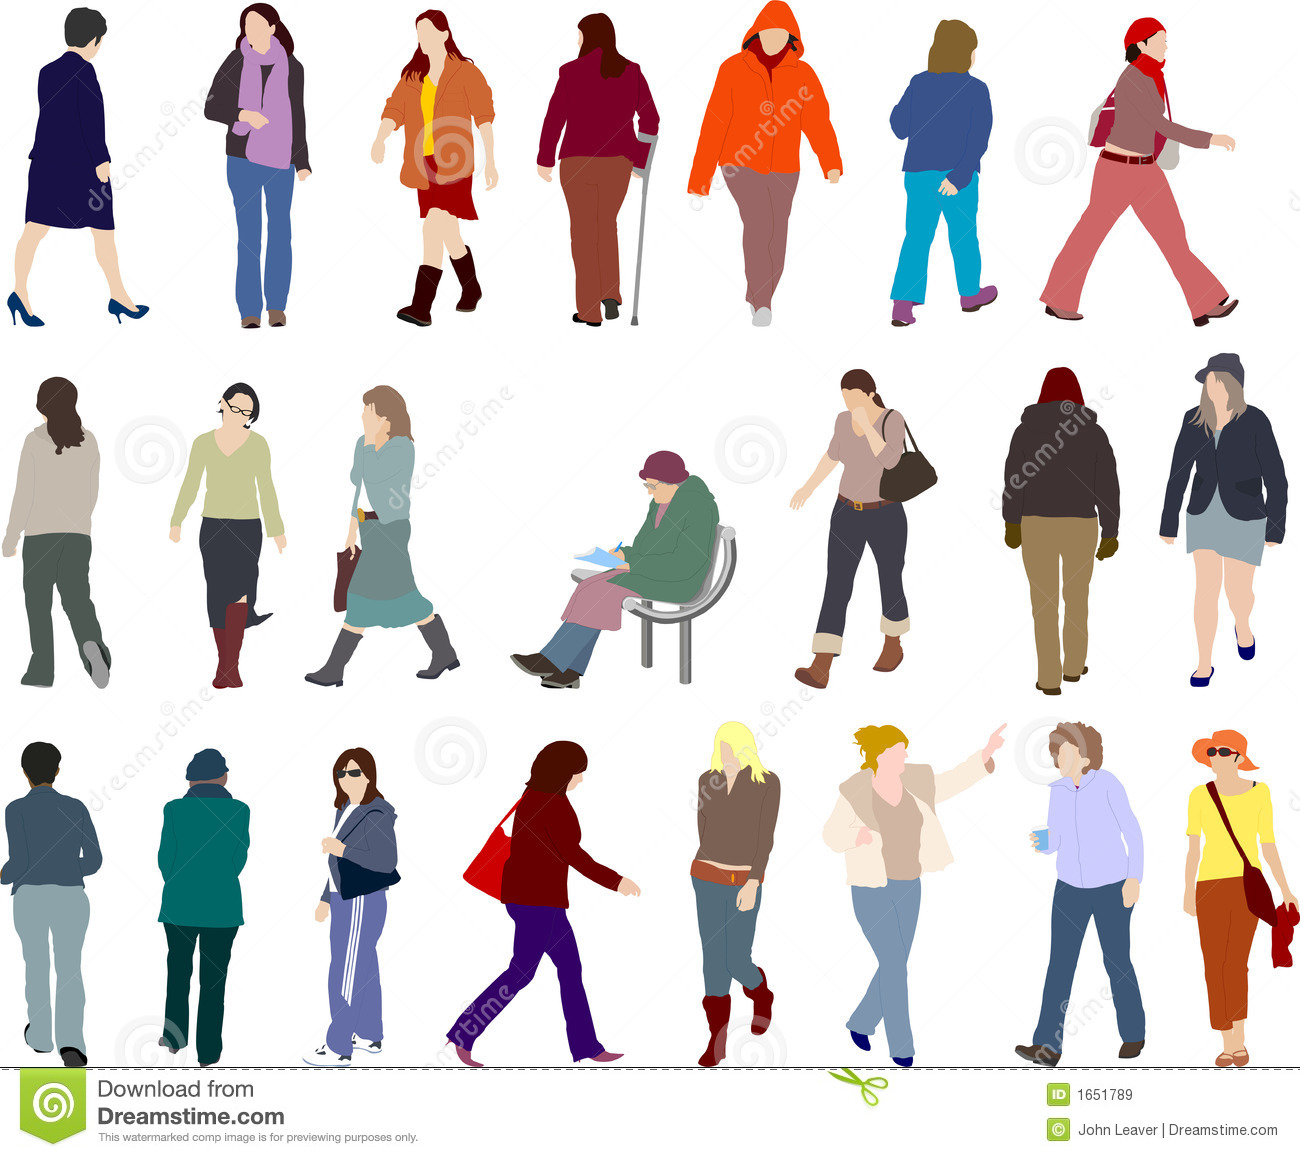 People illustrations